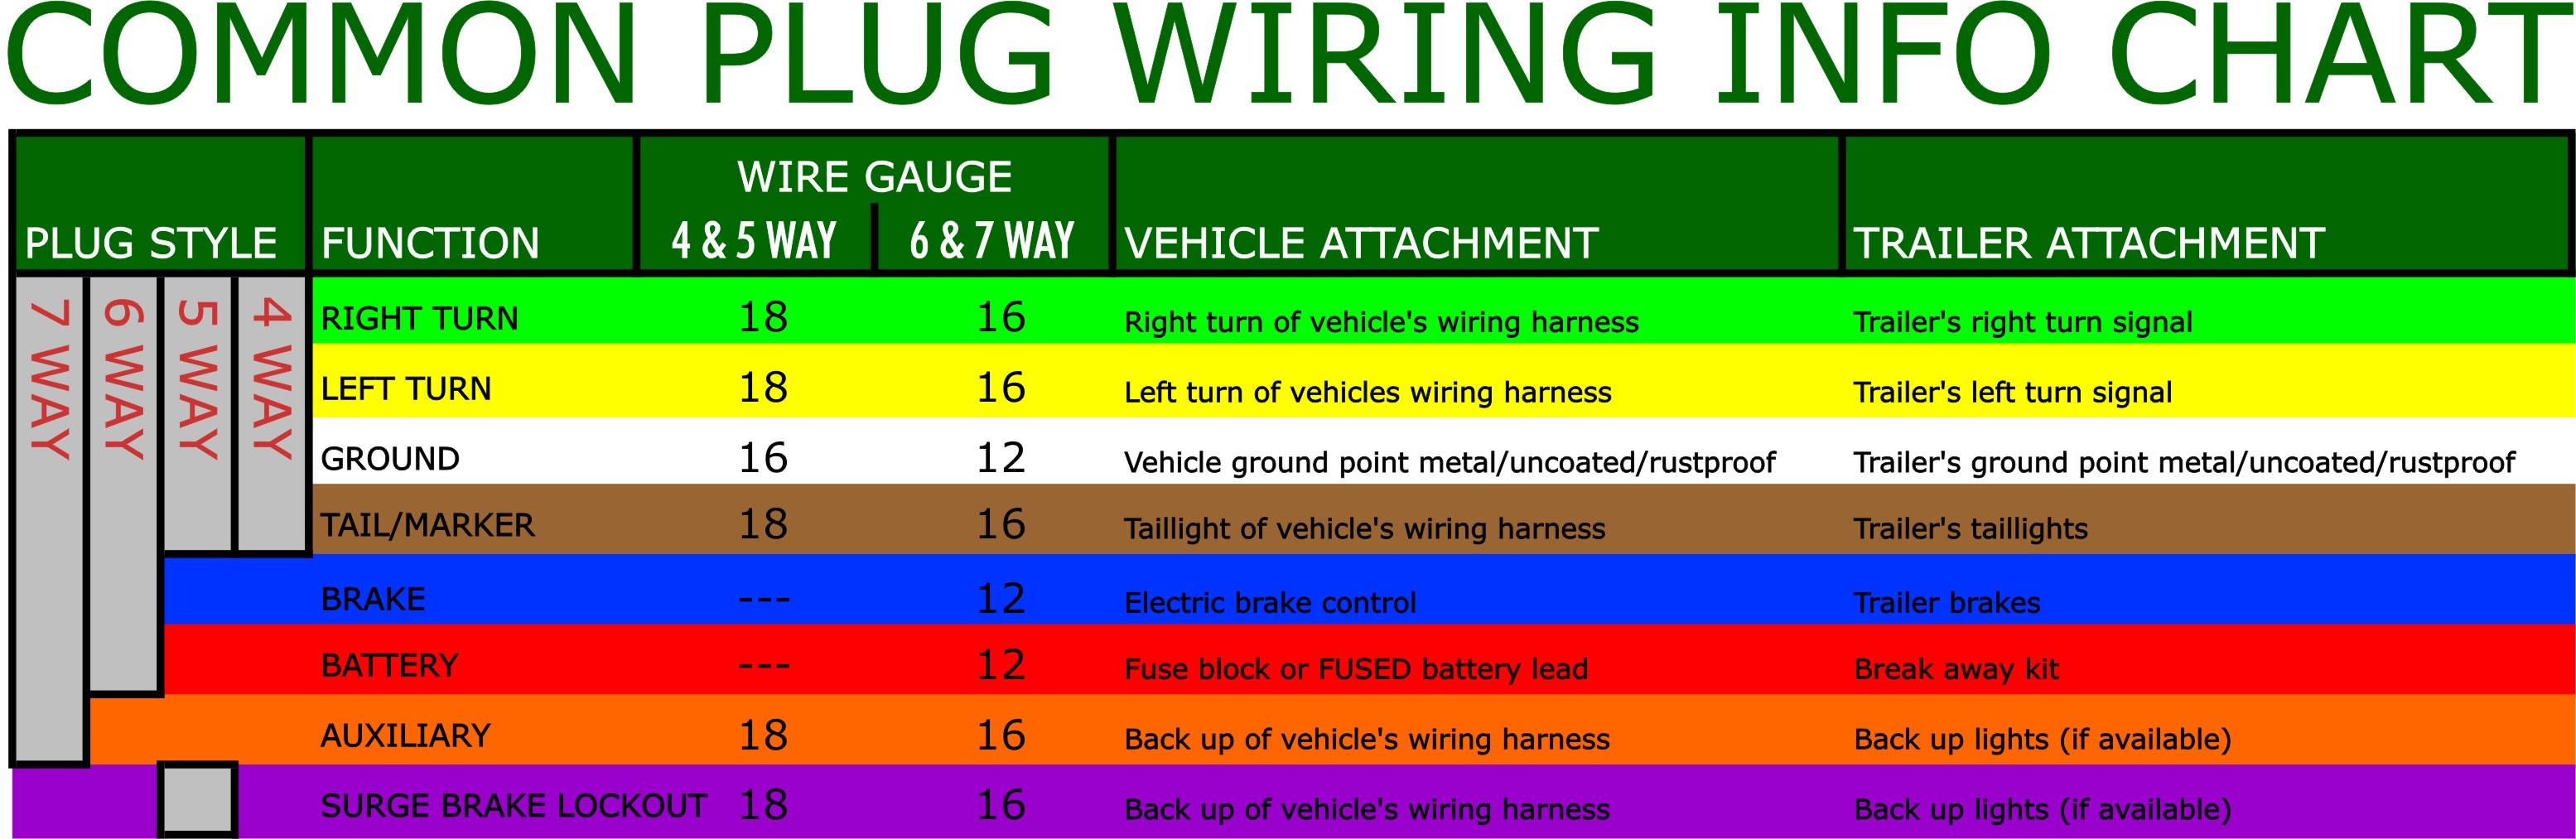 Pop Up Camper Trailer 4 Wire Connector Diagram - Data Wiring Diagram - 4 Pin Trailer Wiring Diagram